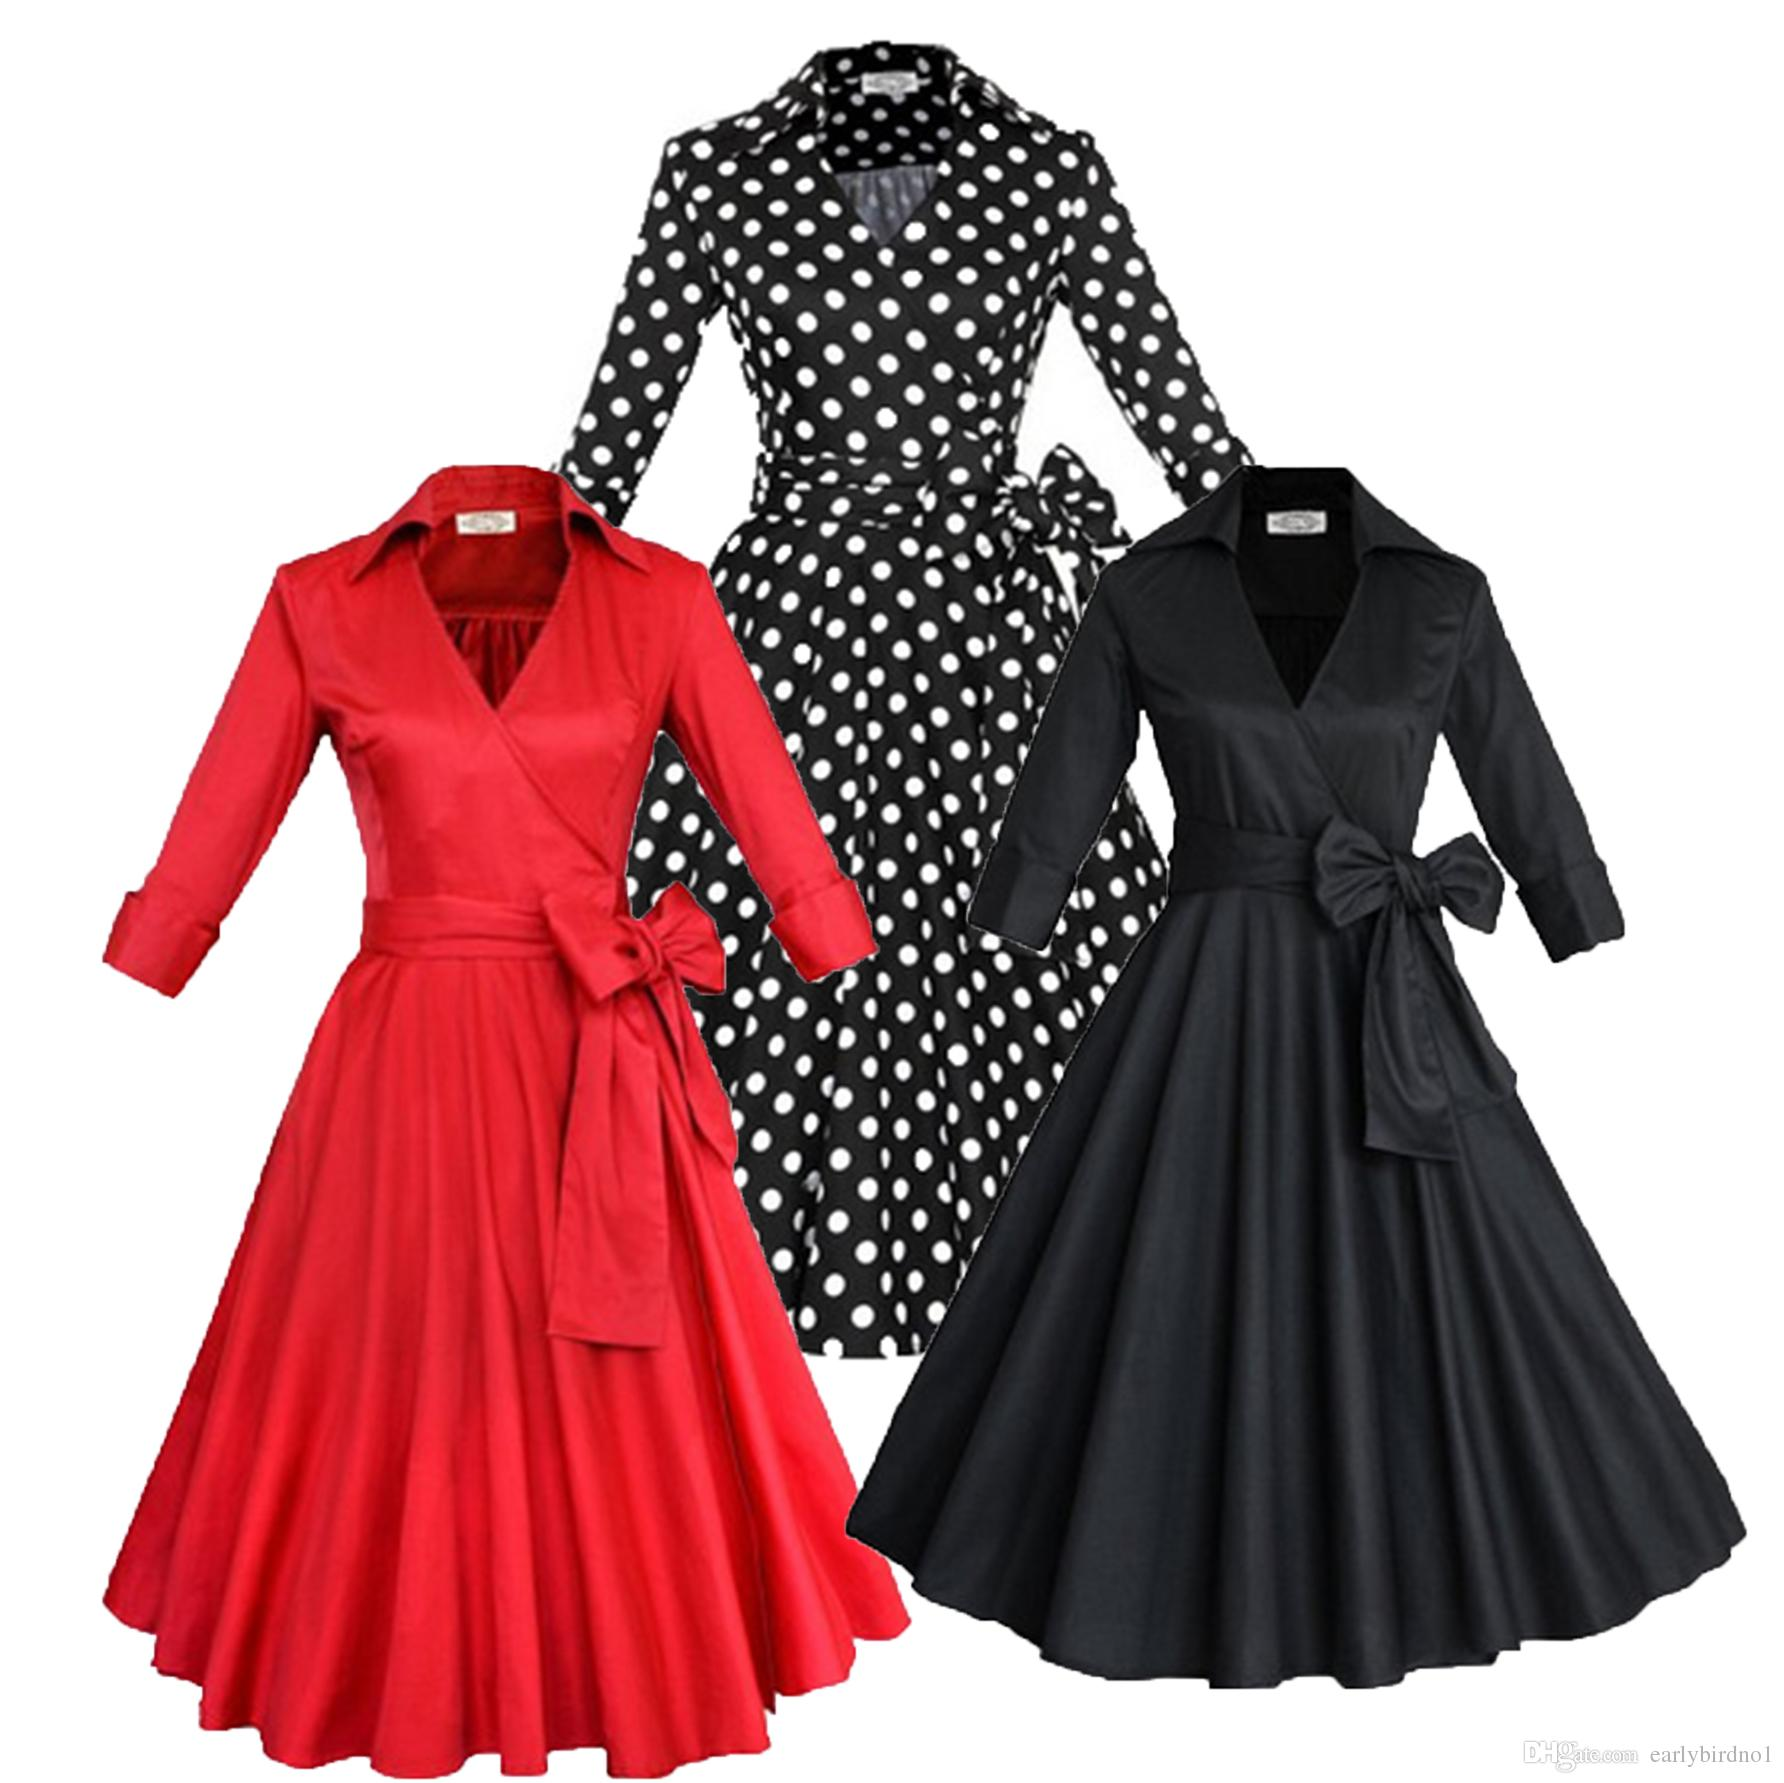 2018 Fashion New Audrey Hepburn Vintage Style Casual Dresses Modern Ruffles Women European Fall